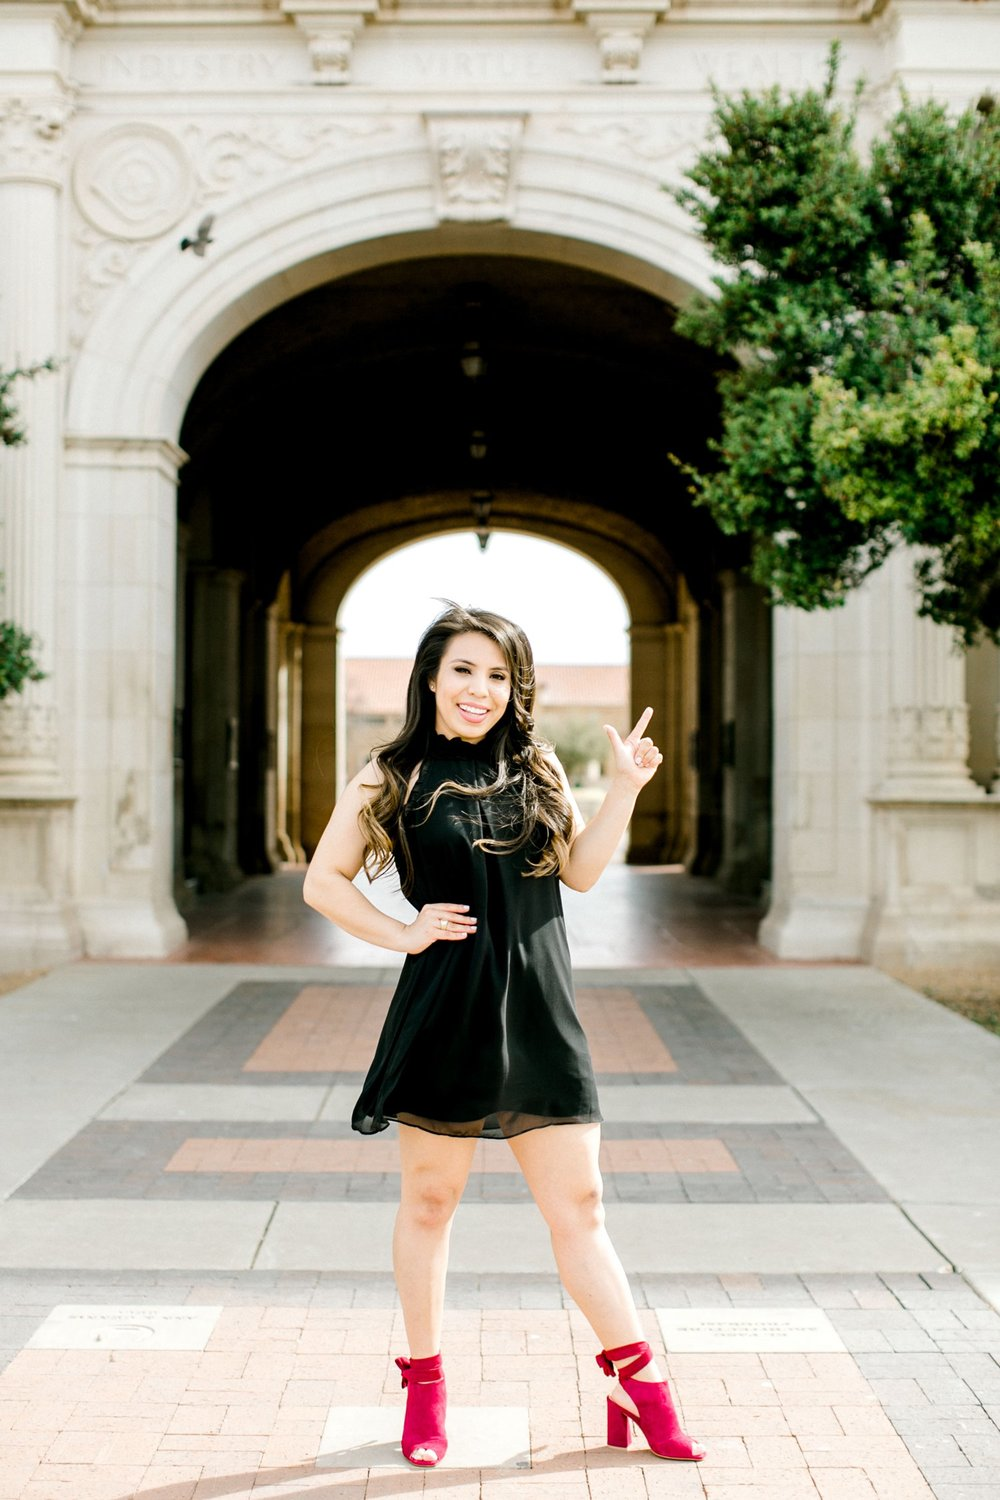 Desirae-morales-texas-tech-university-senior-photography_0018.jpg